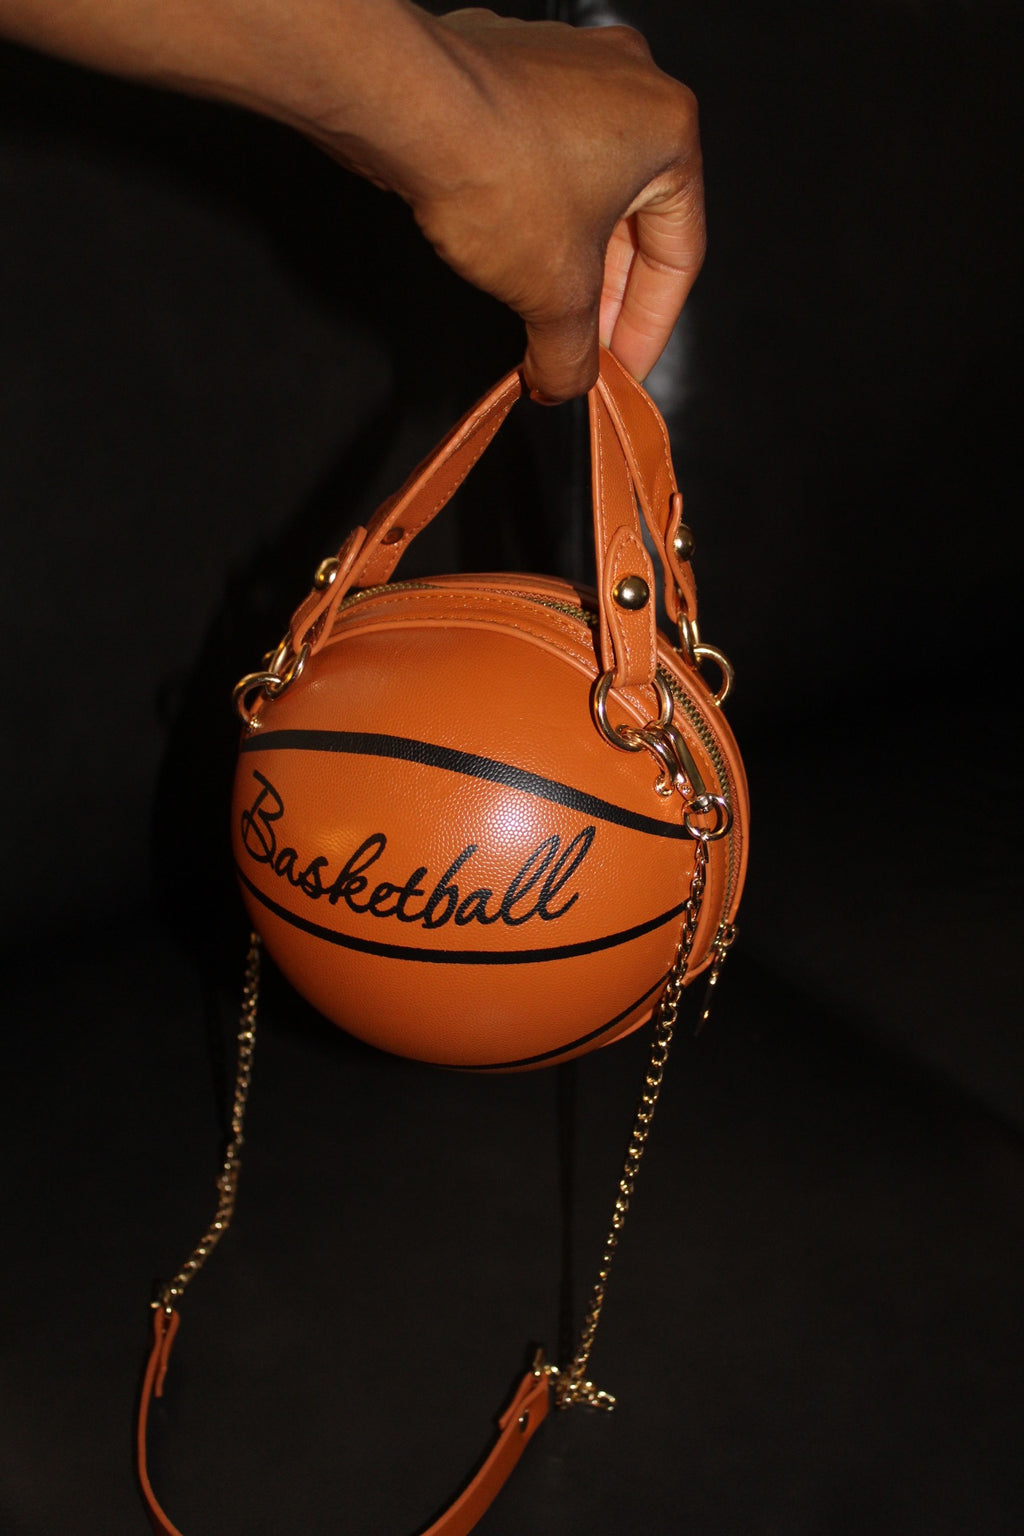 Mini basket ball purse